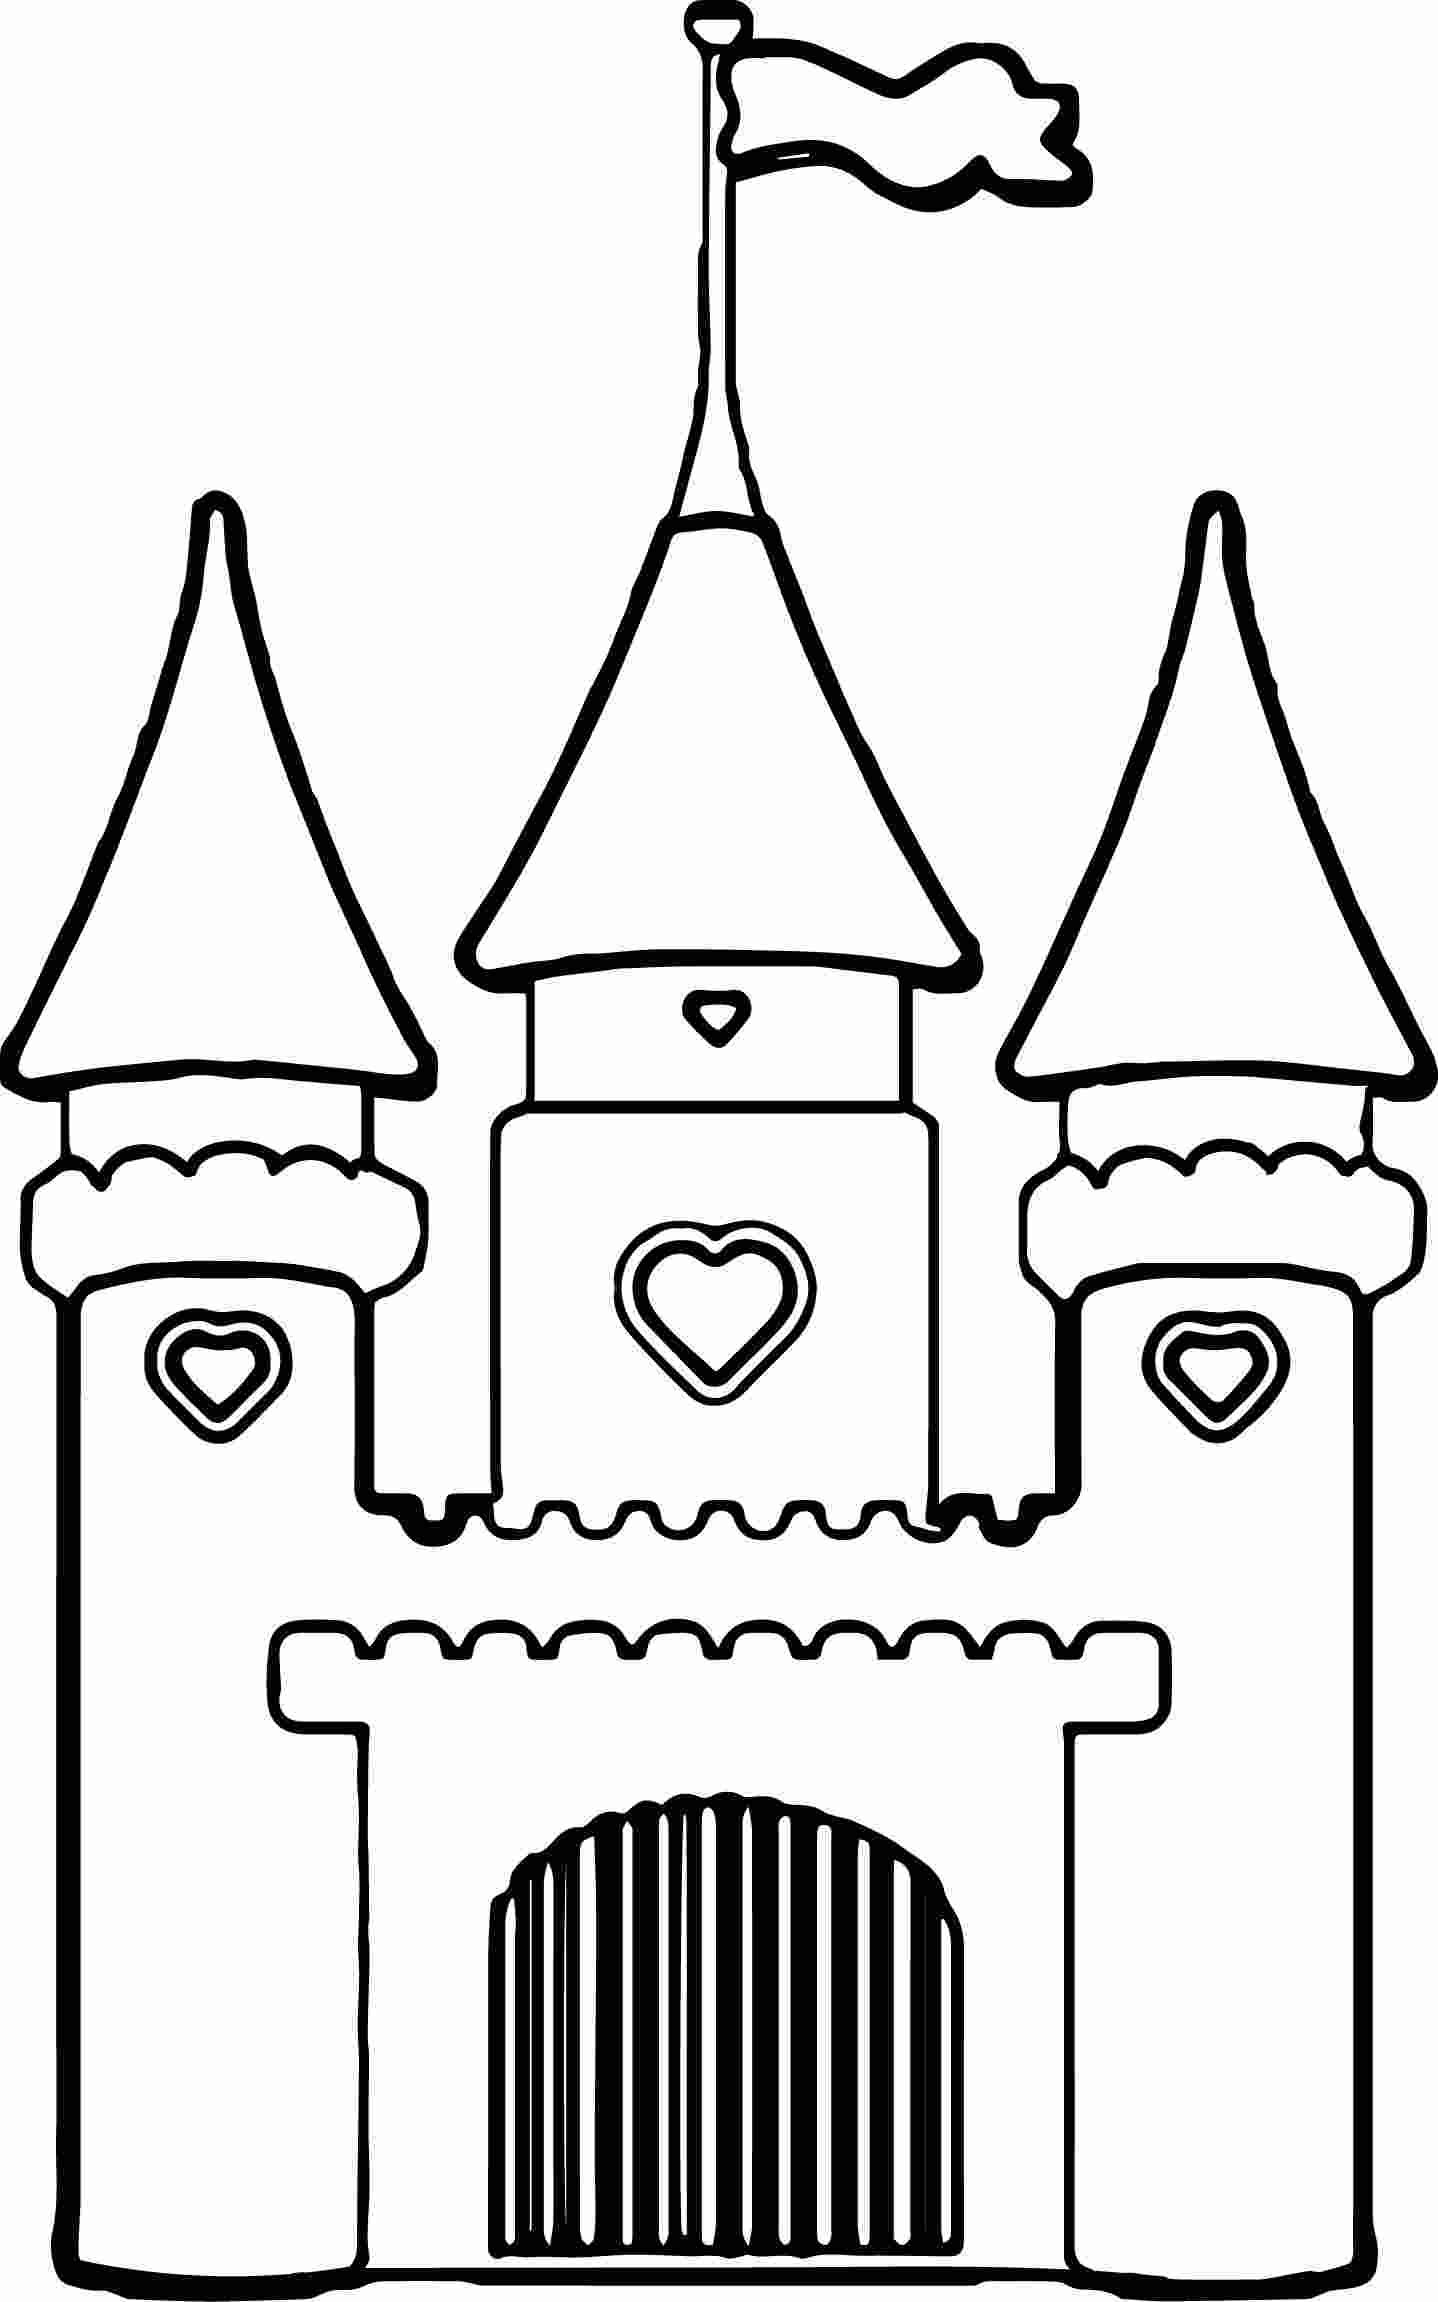 princess castle colouring pages free printable castle coloring pages for kids castle colouring princess pages